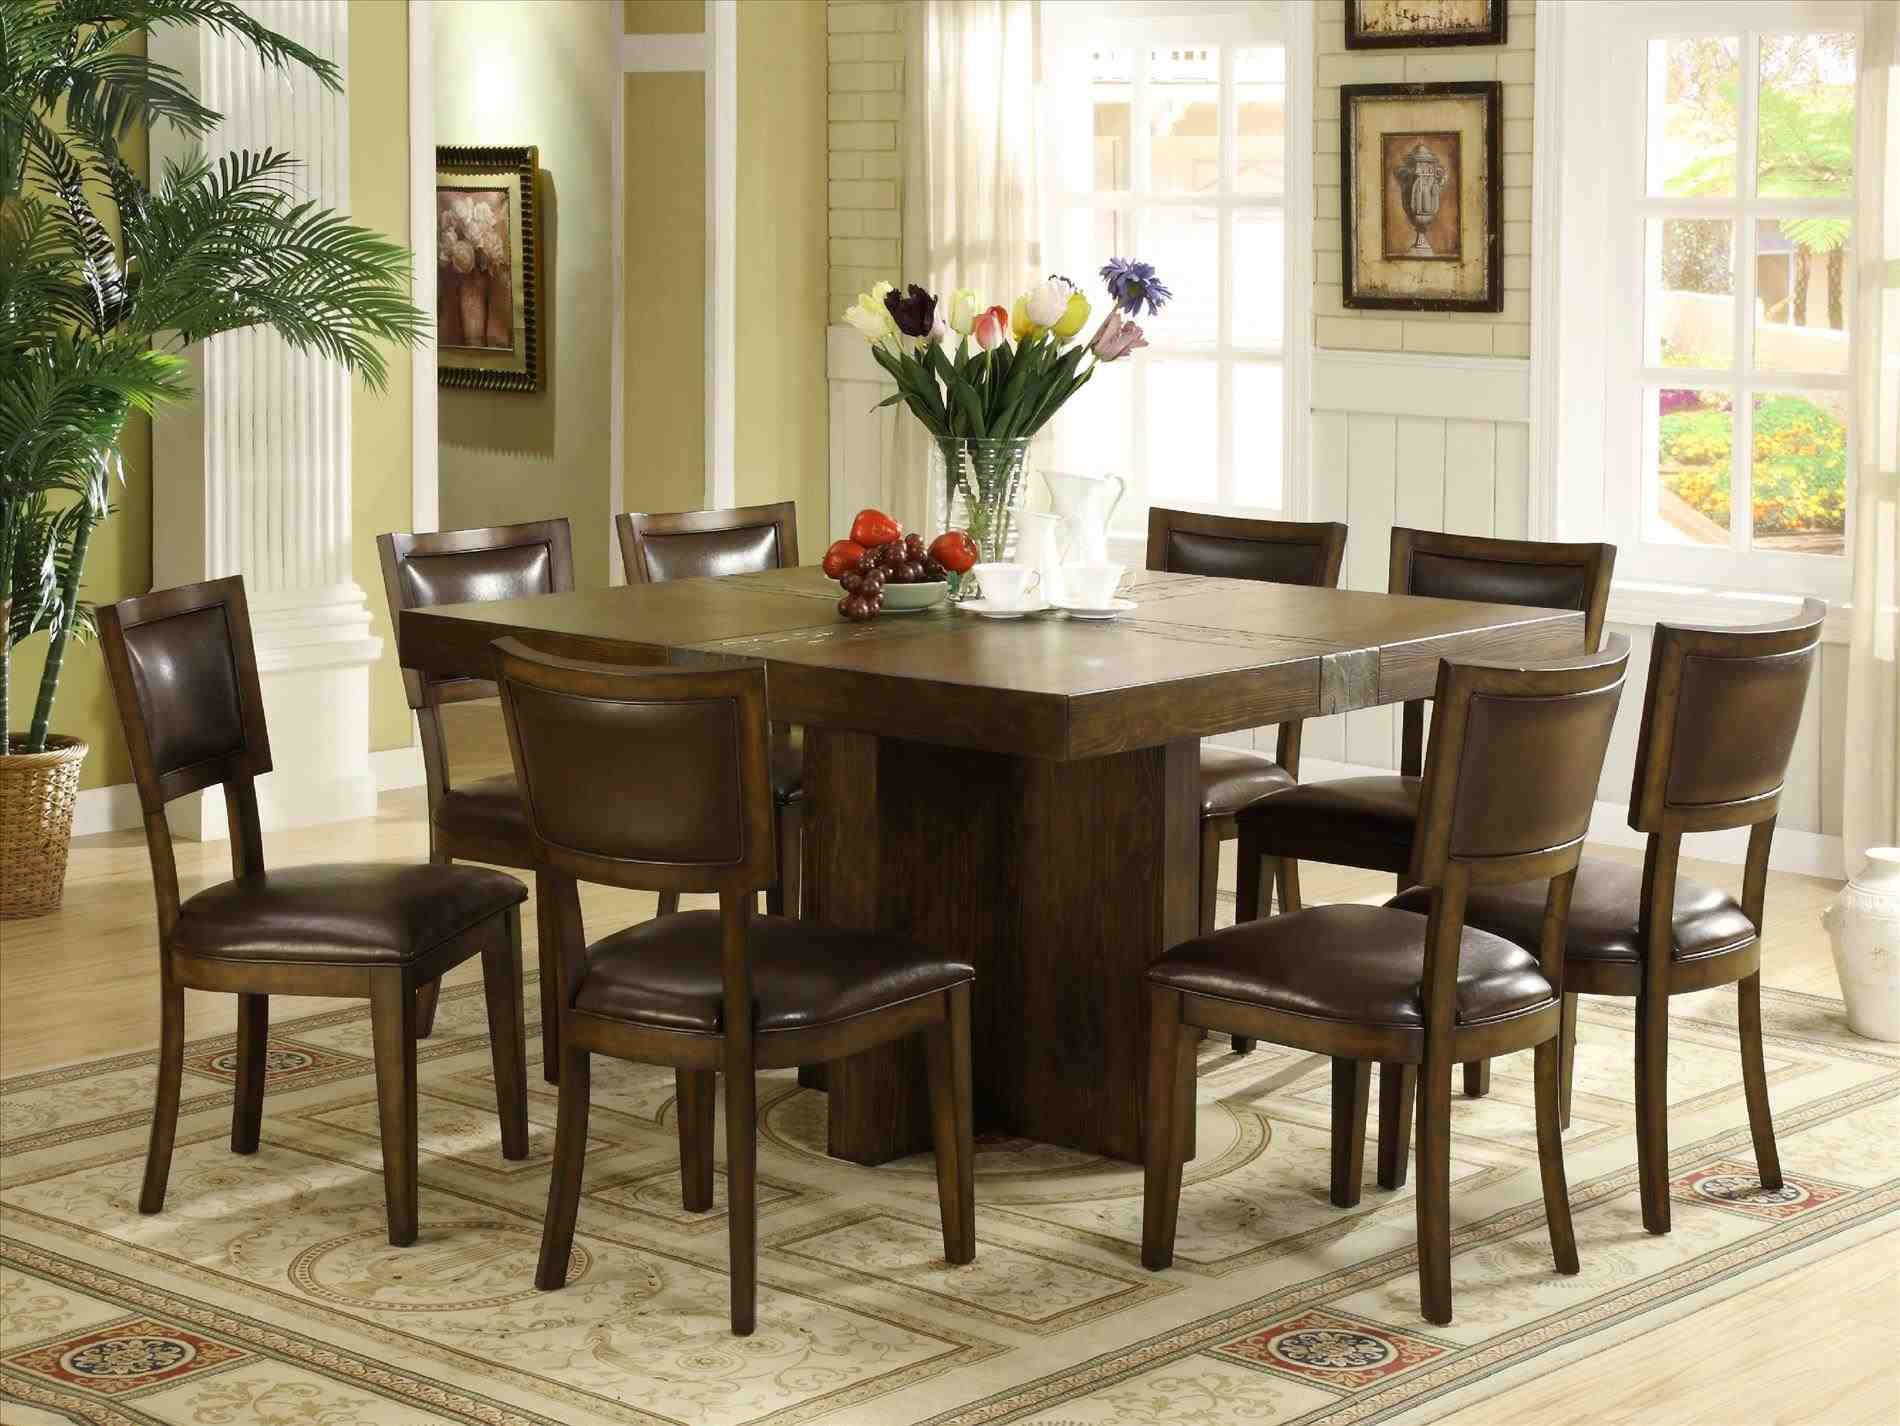 new post square kitchen table sets for 4 | decors ideas | pinterest